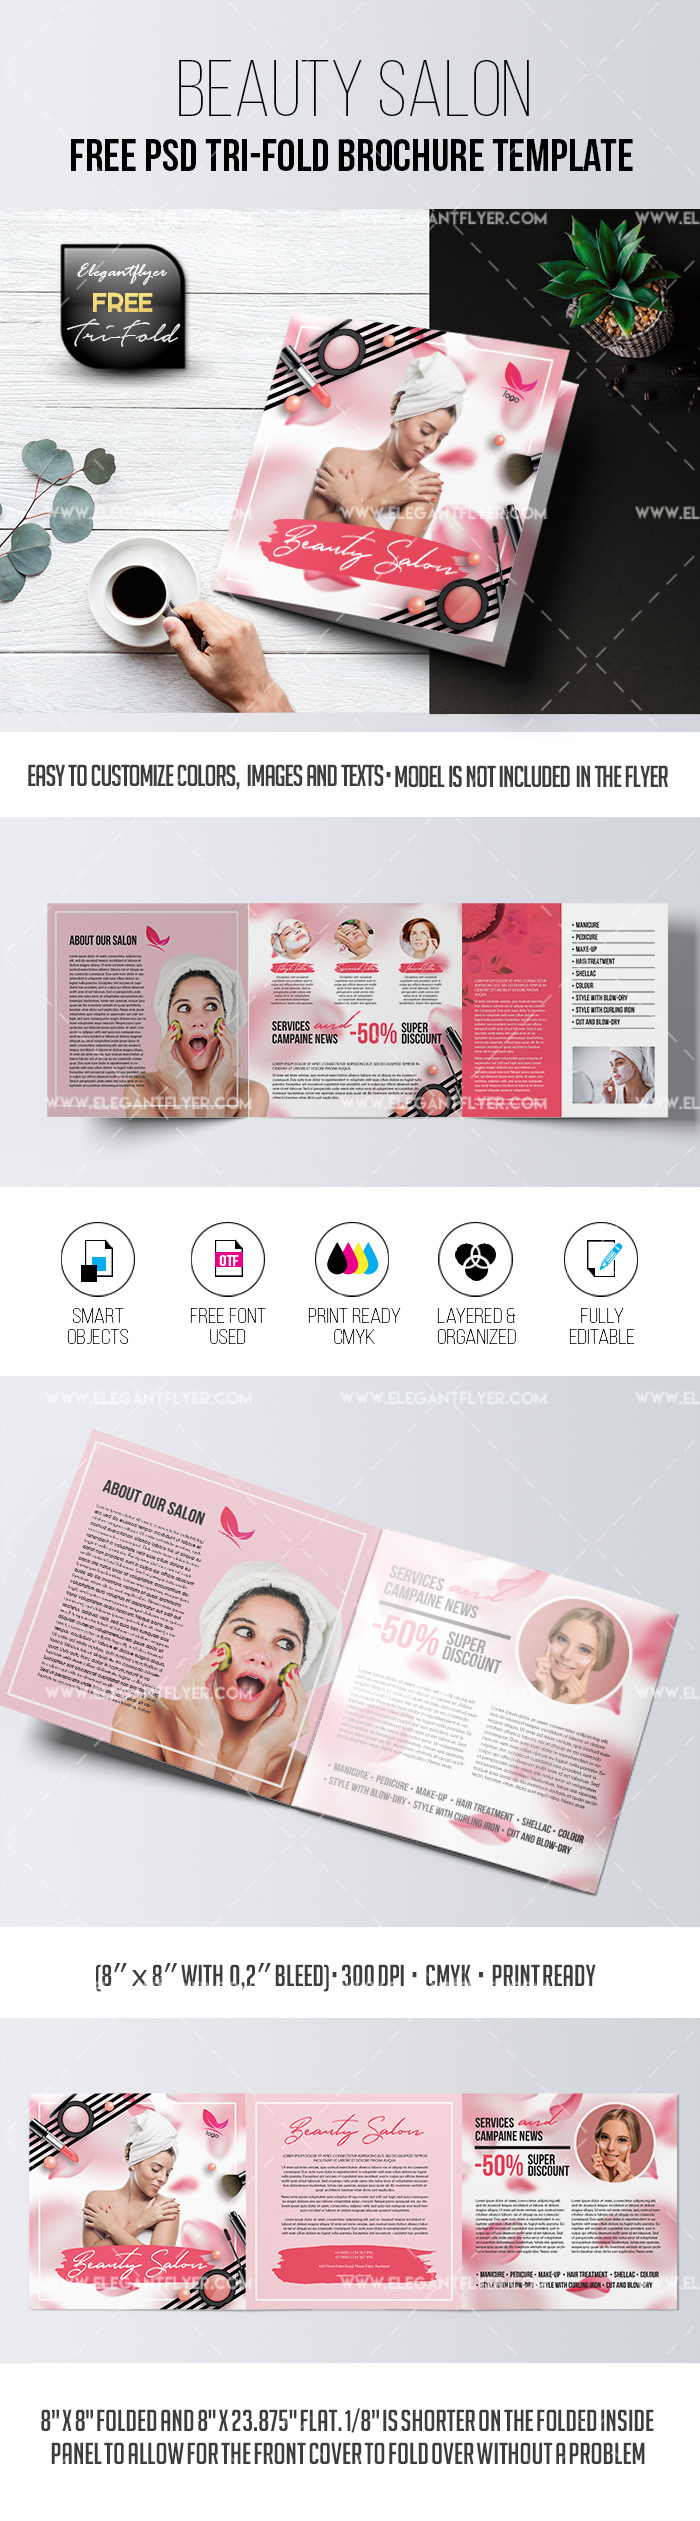 Beauty Salon – Free PSD Brochure Template